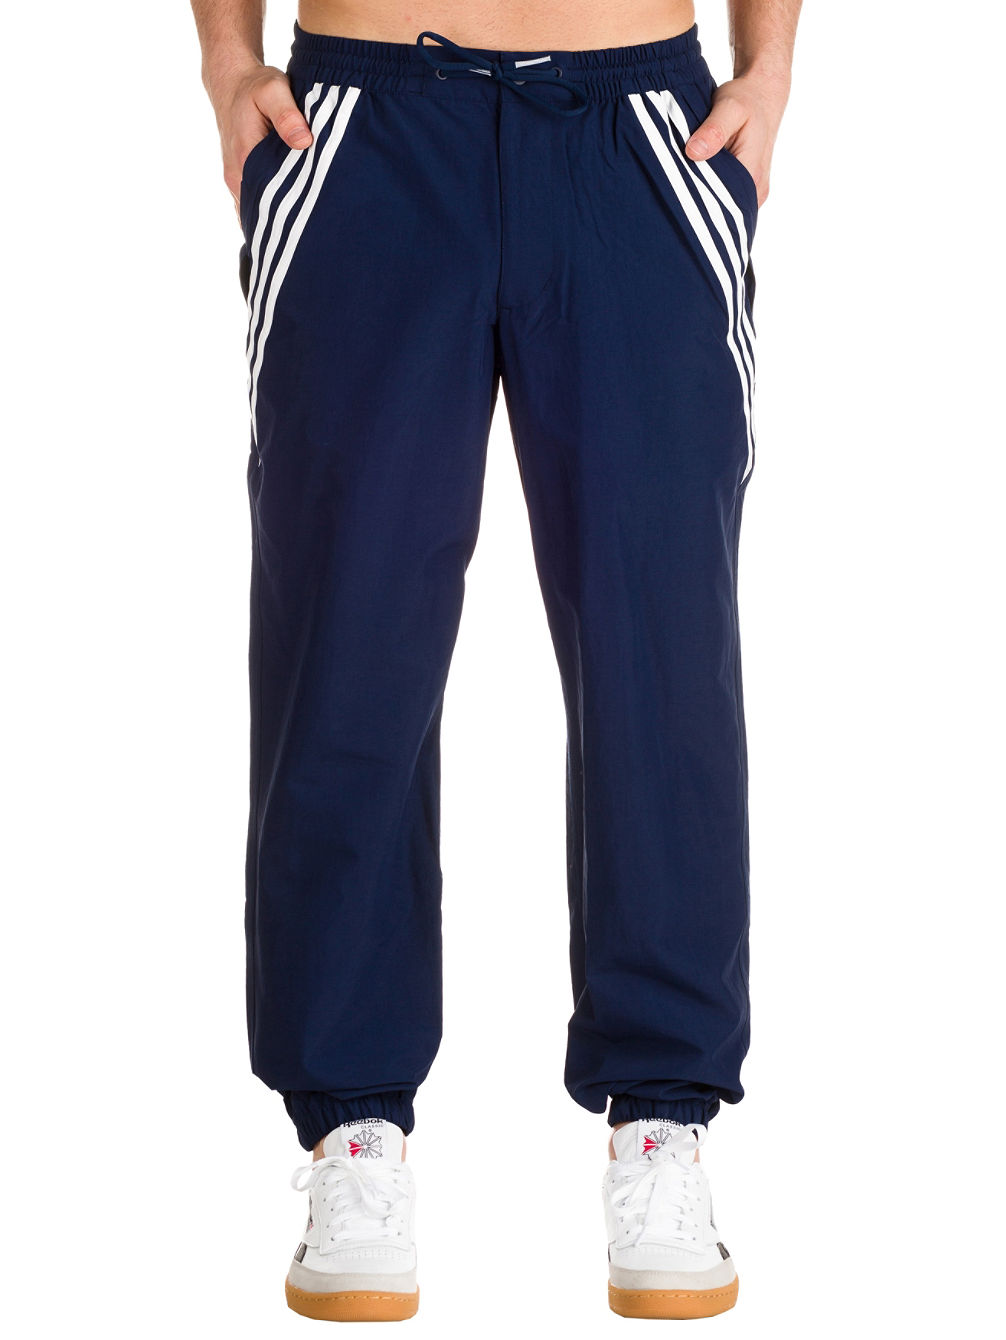 official photos a876e ae3b4 Buy adidas Skateboarding Workshop Jogging Pants online at blue-tomato.com